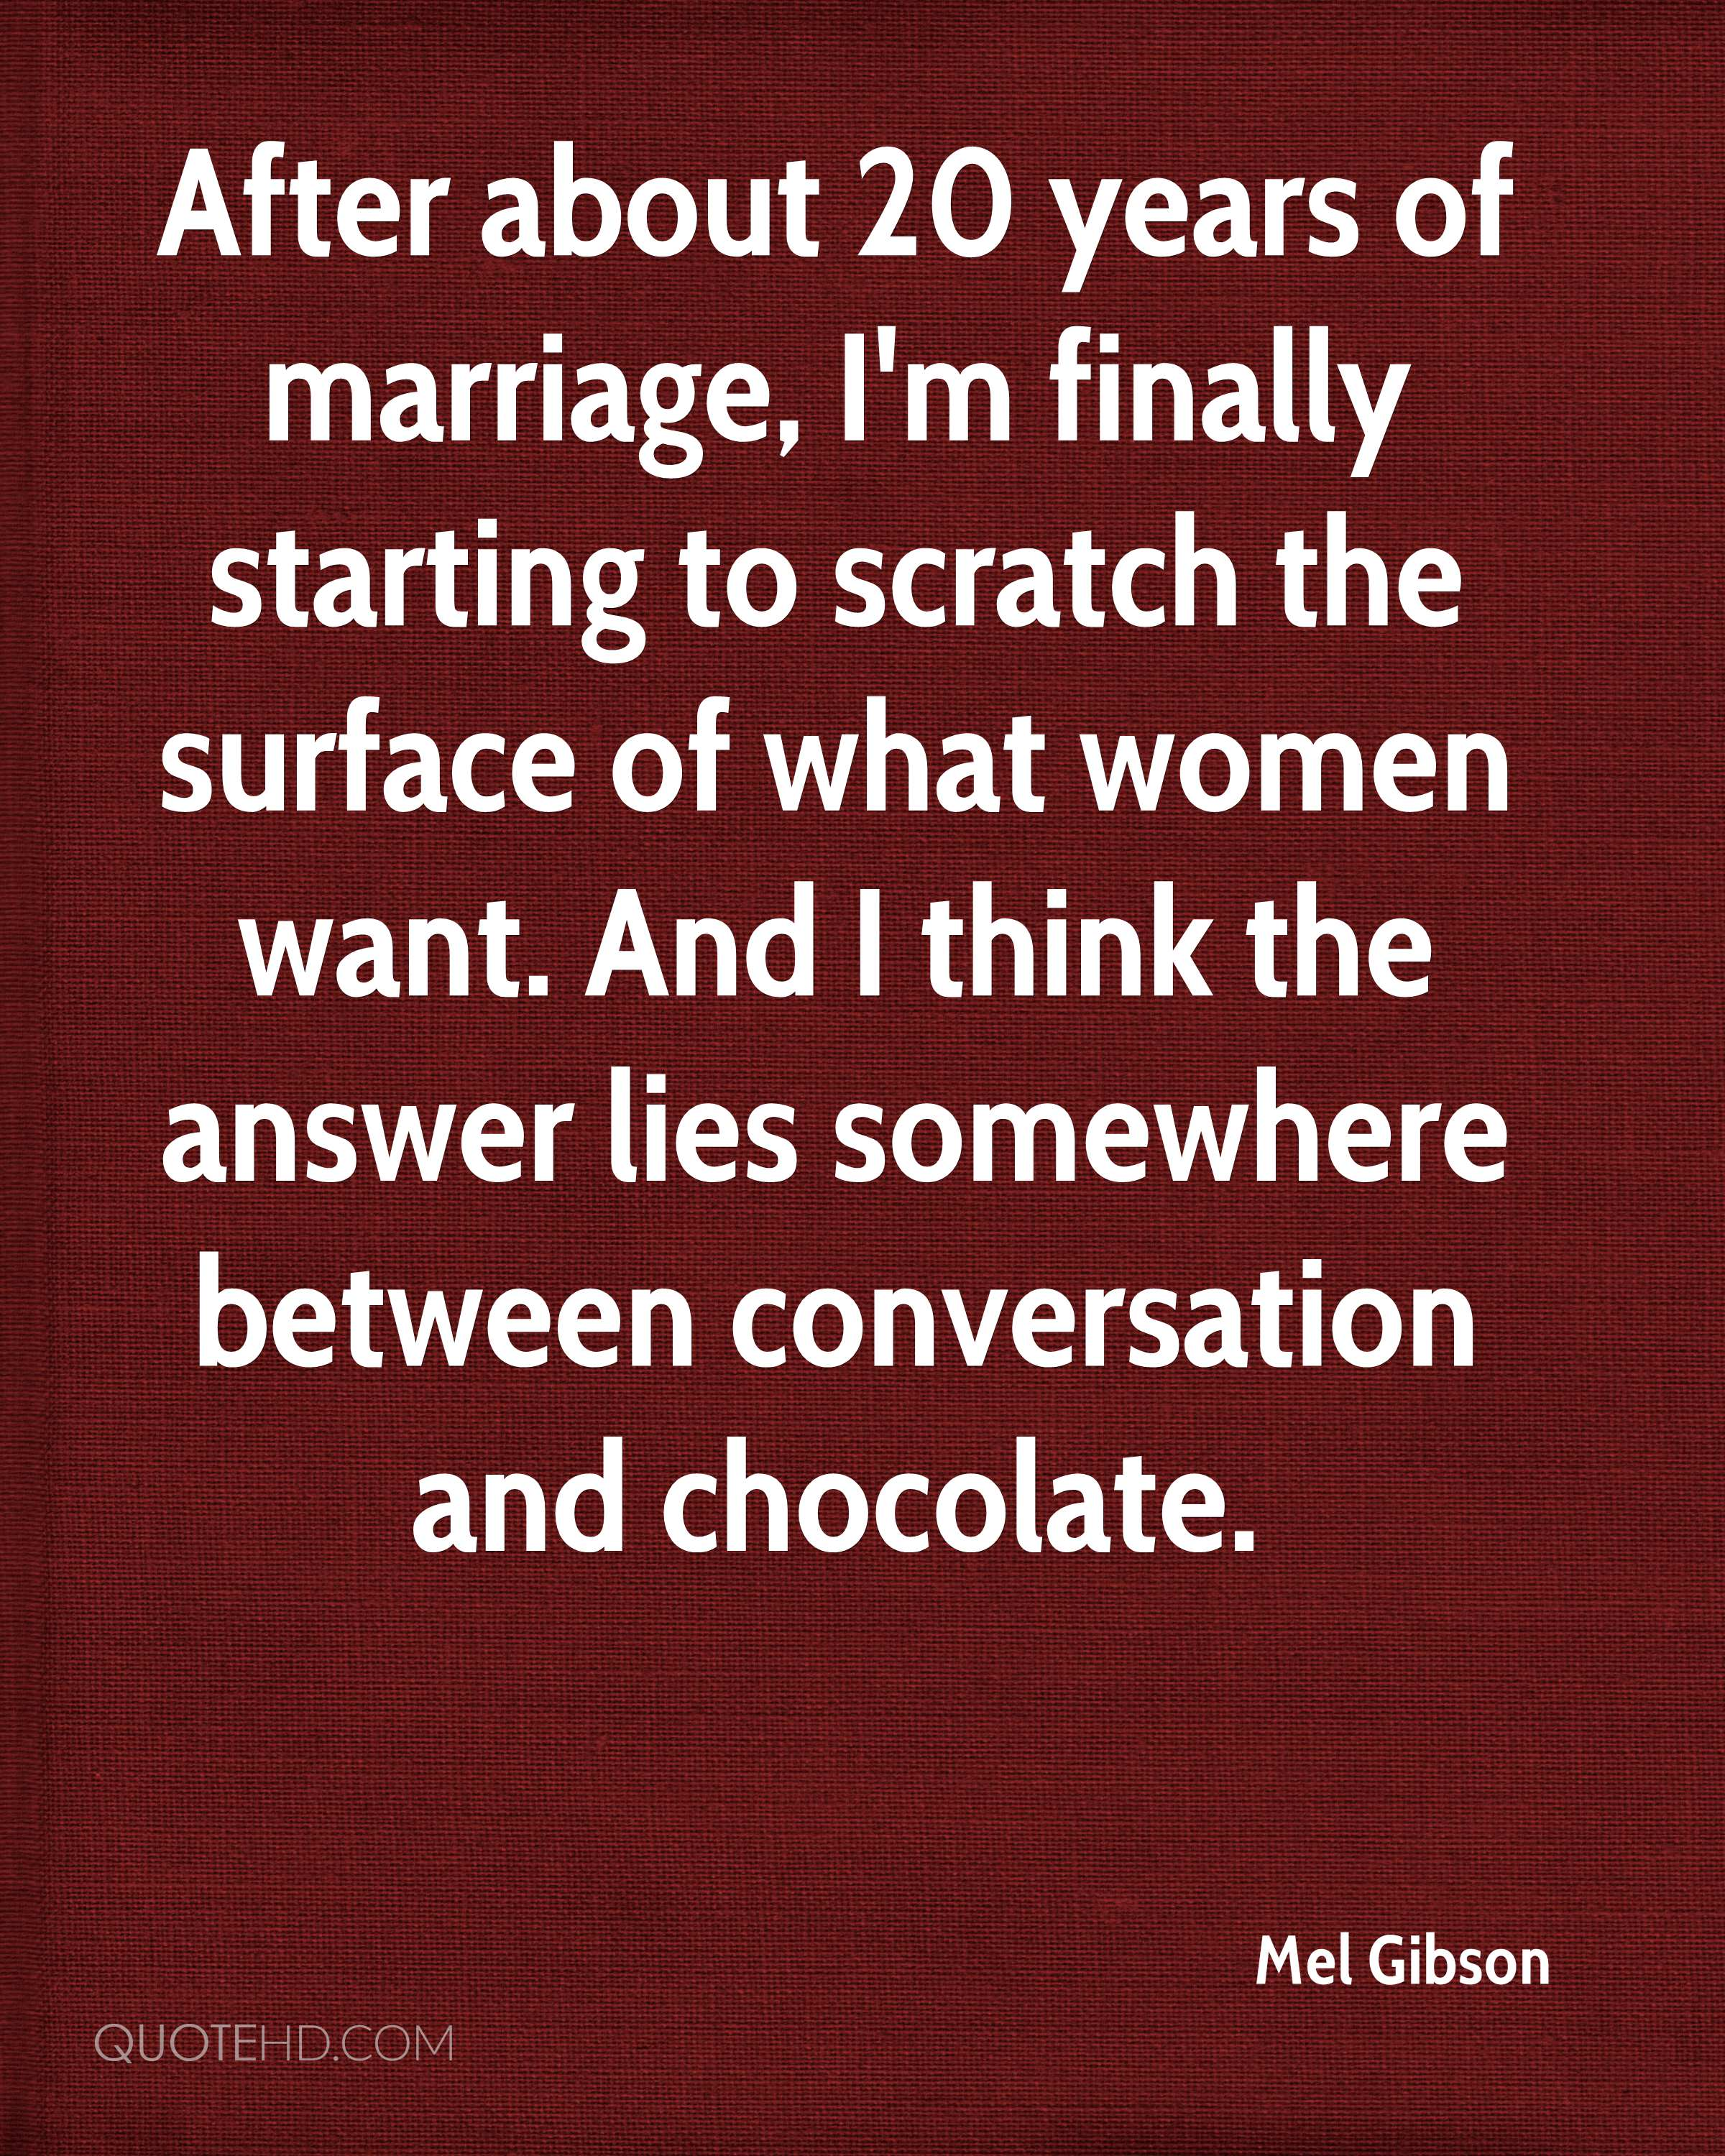 After about 20 years of marriage, I'm finally starting to scratch the surface of what women want. And I think the answer lies somewhere between conversation and chocolate.